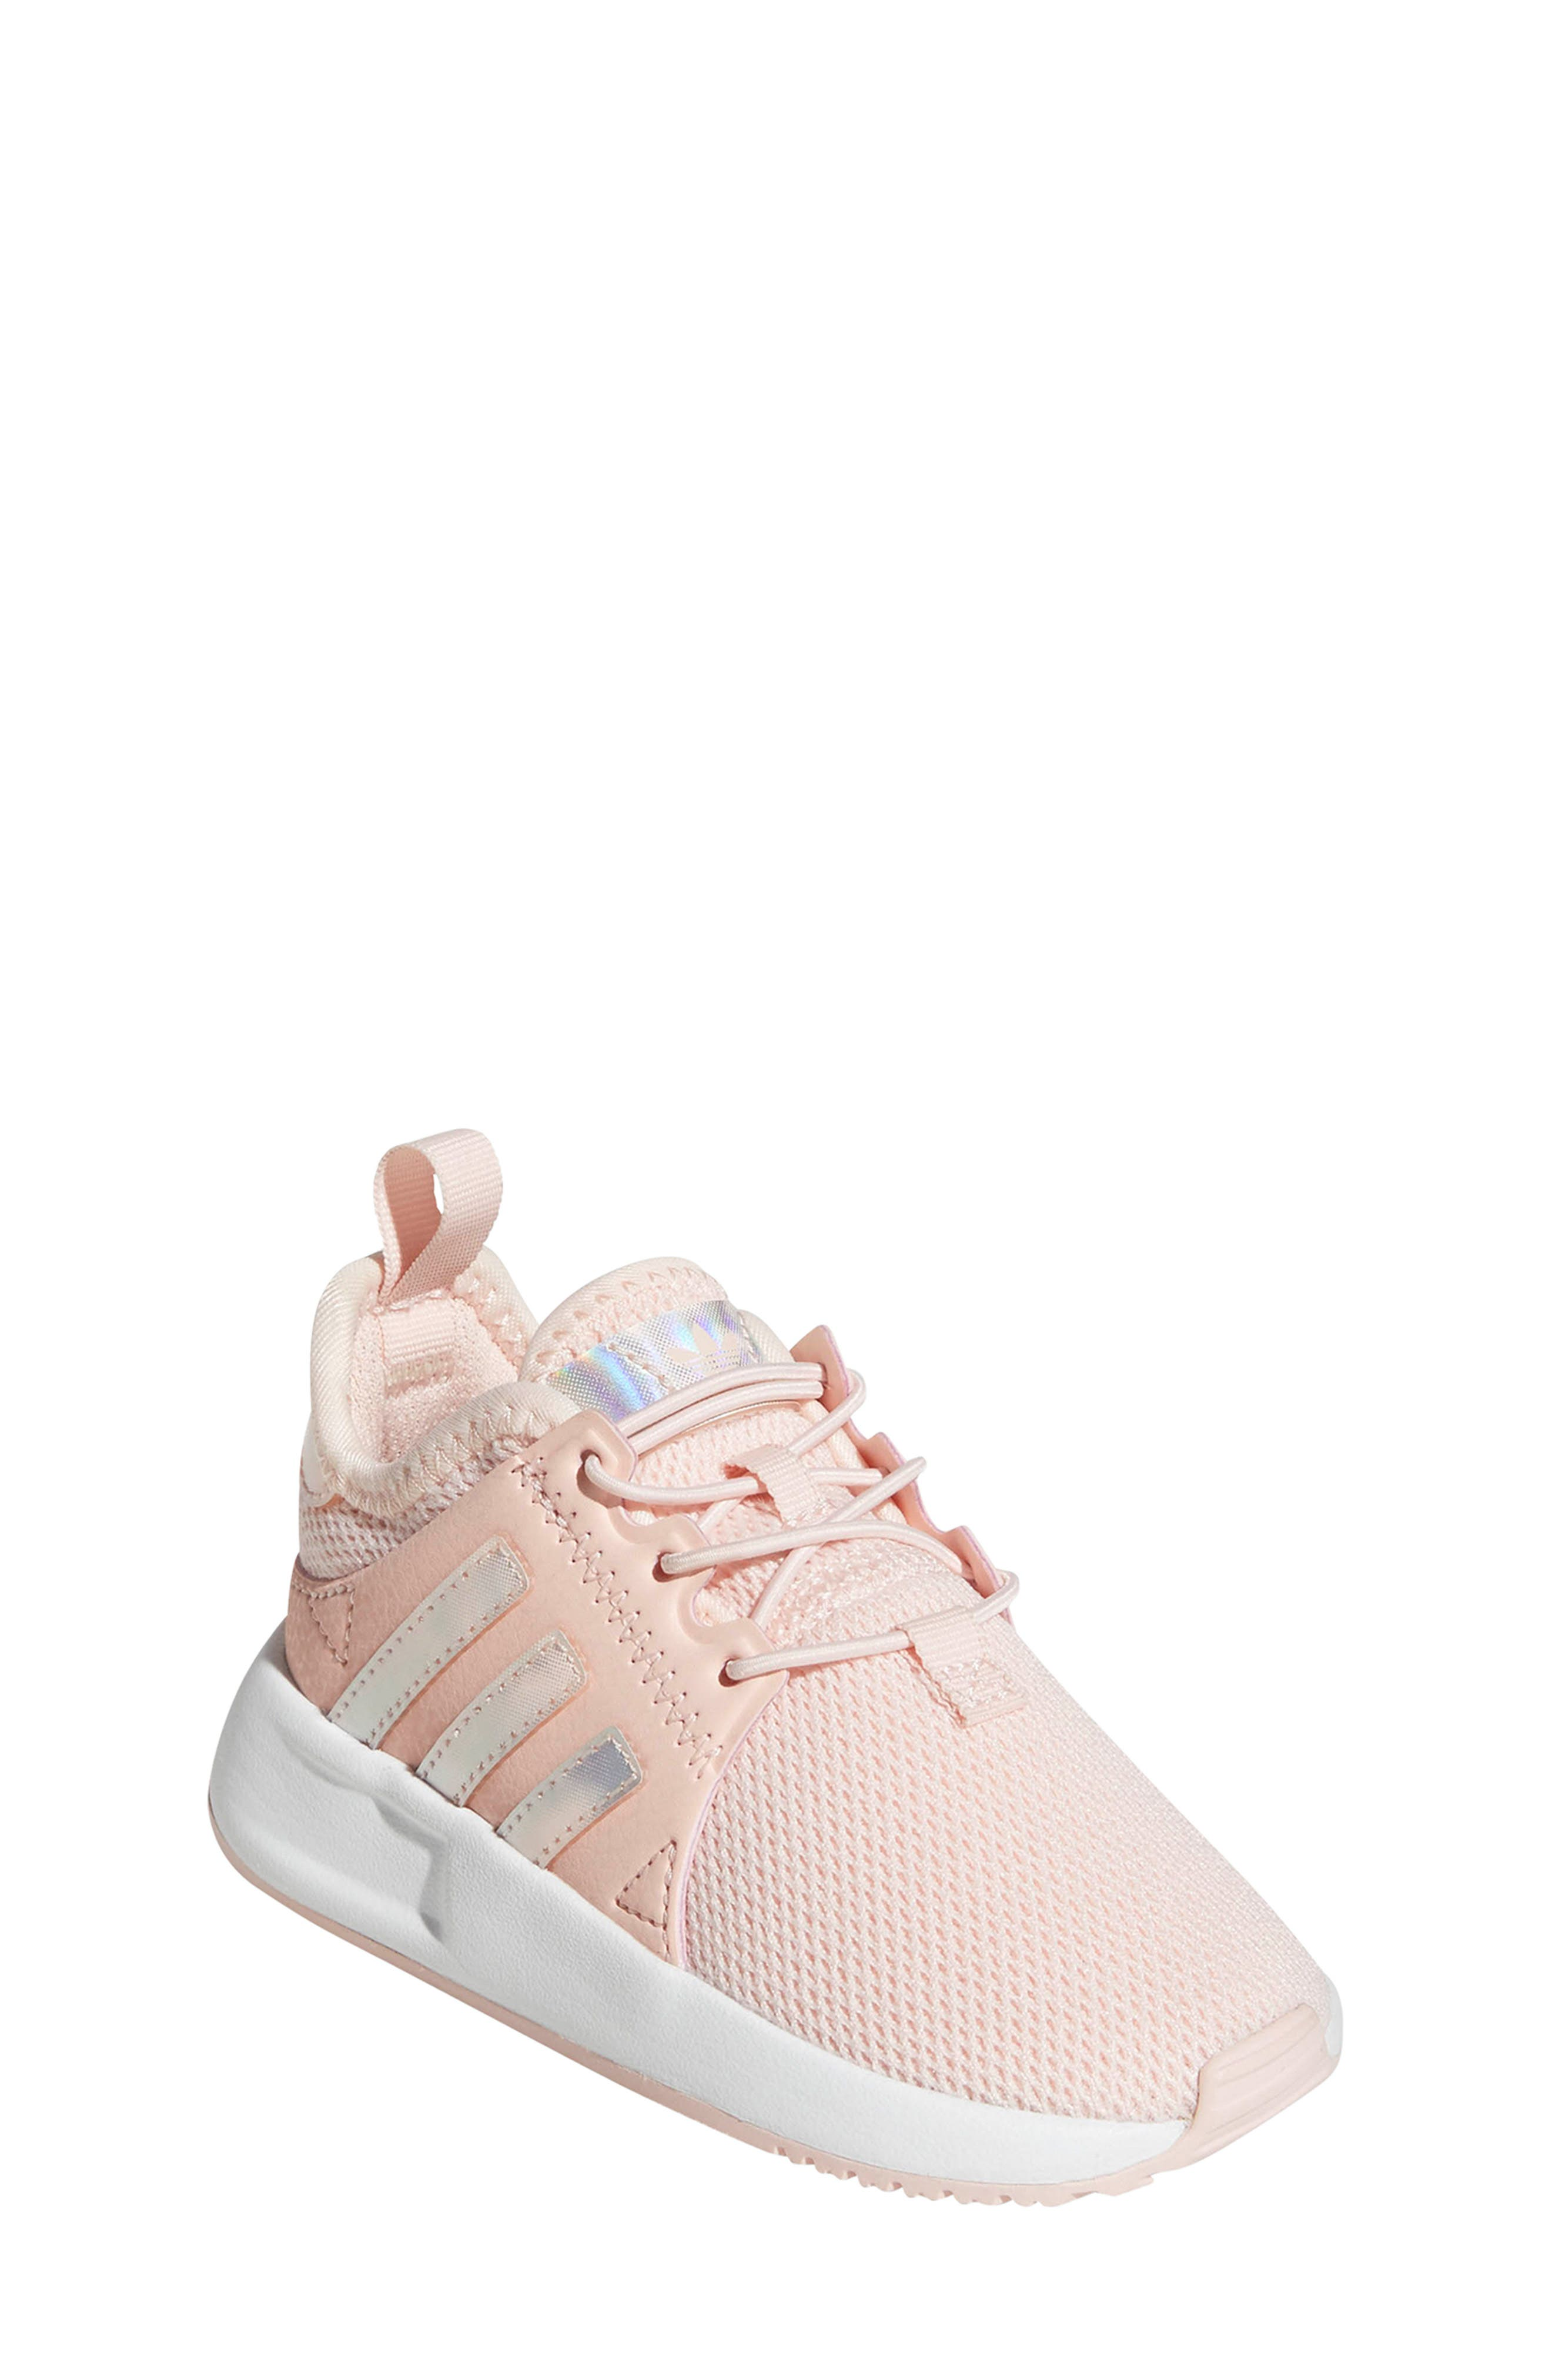 ADIDAS X_PLR Sneaker, Main, color, ICE PINK/ WHITE